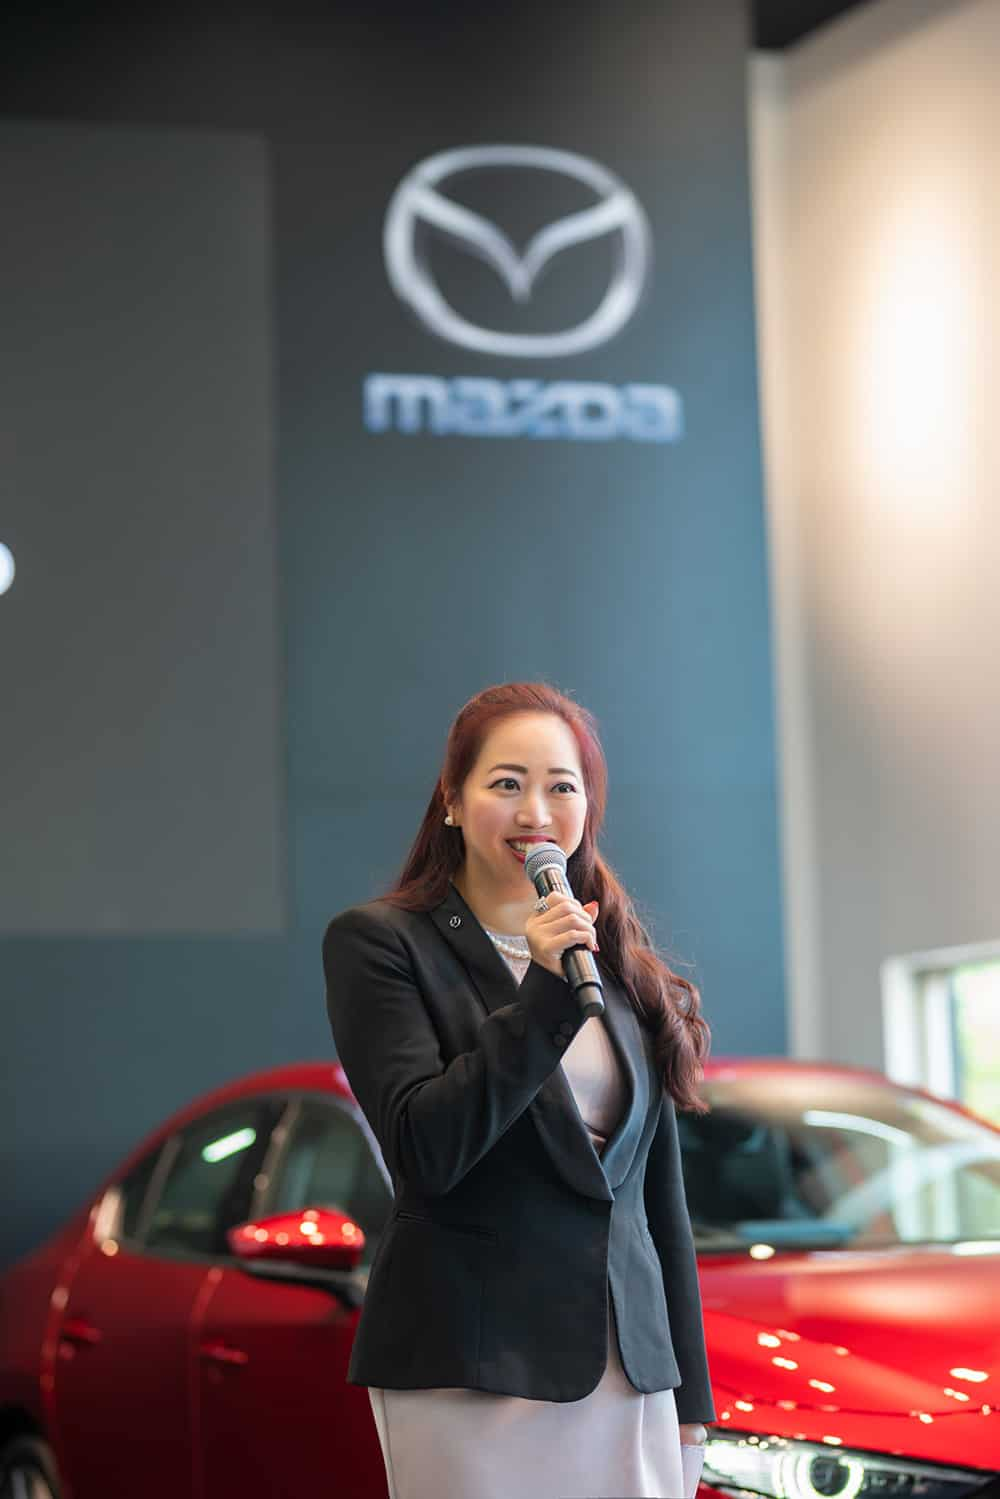 GM, Group PR and Corporate Communications of Eurokars Group hosting the Exclusive Media Showcase event for the All-New Mazda3